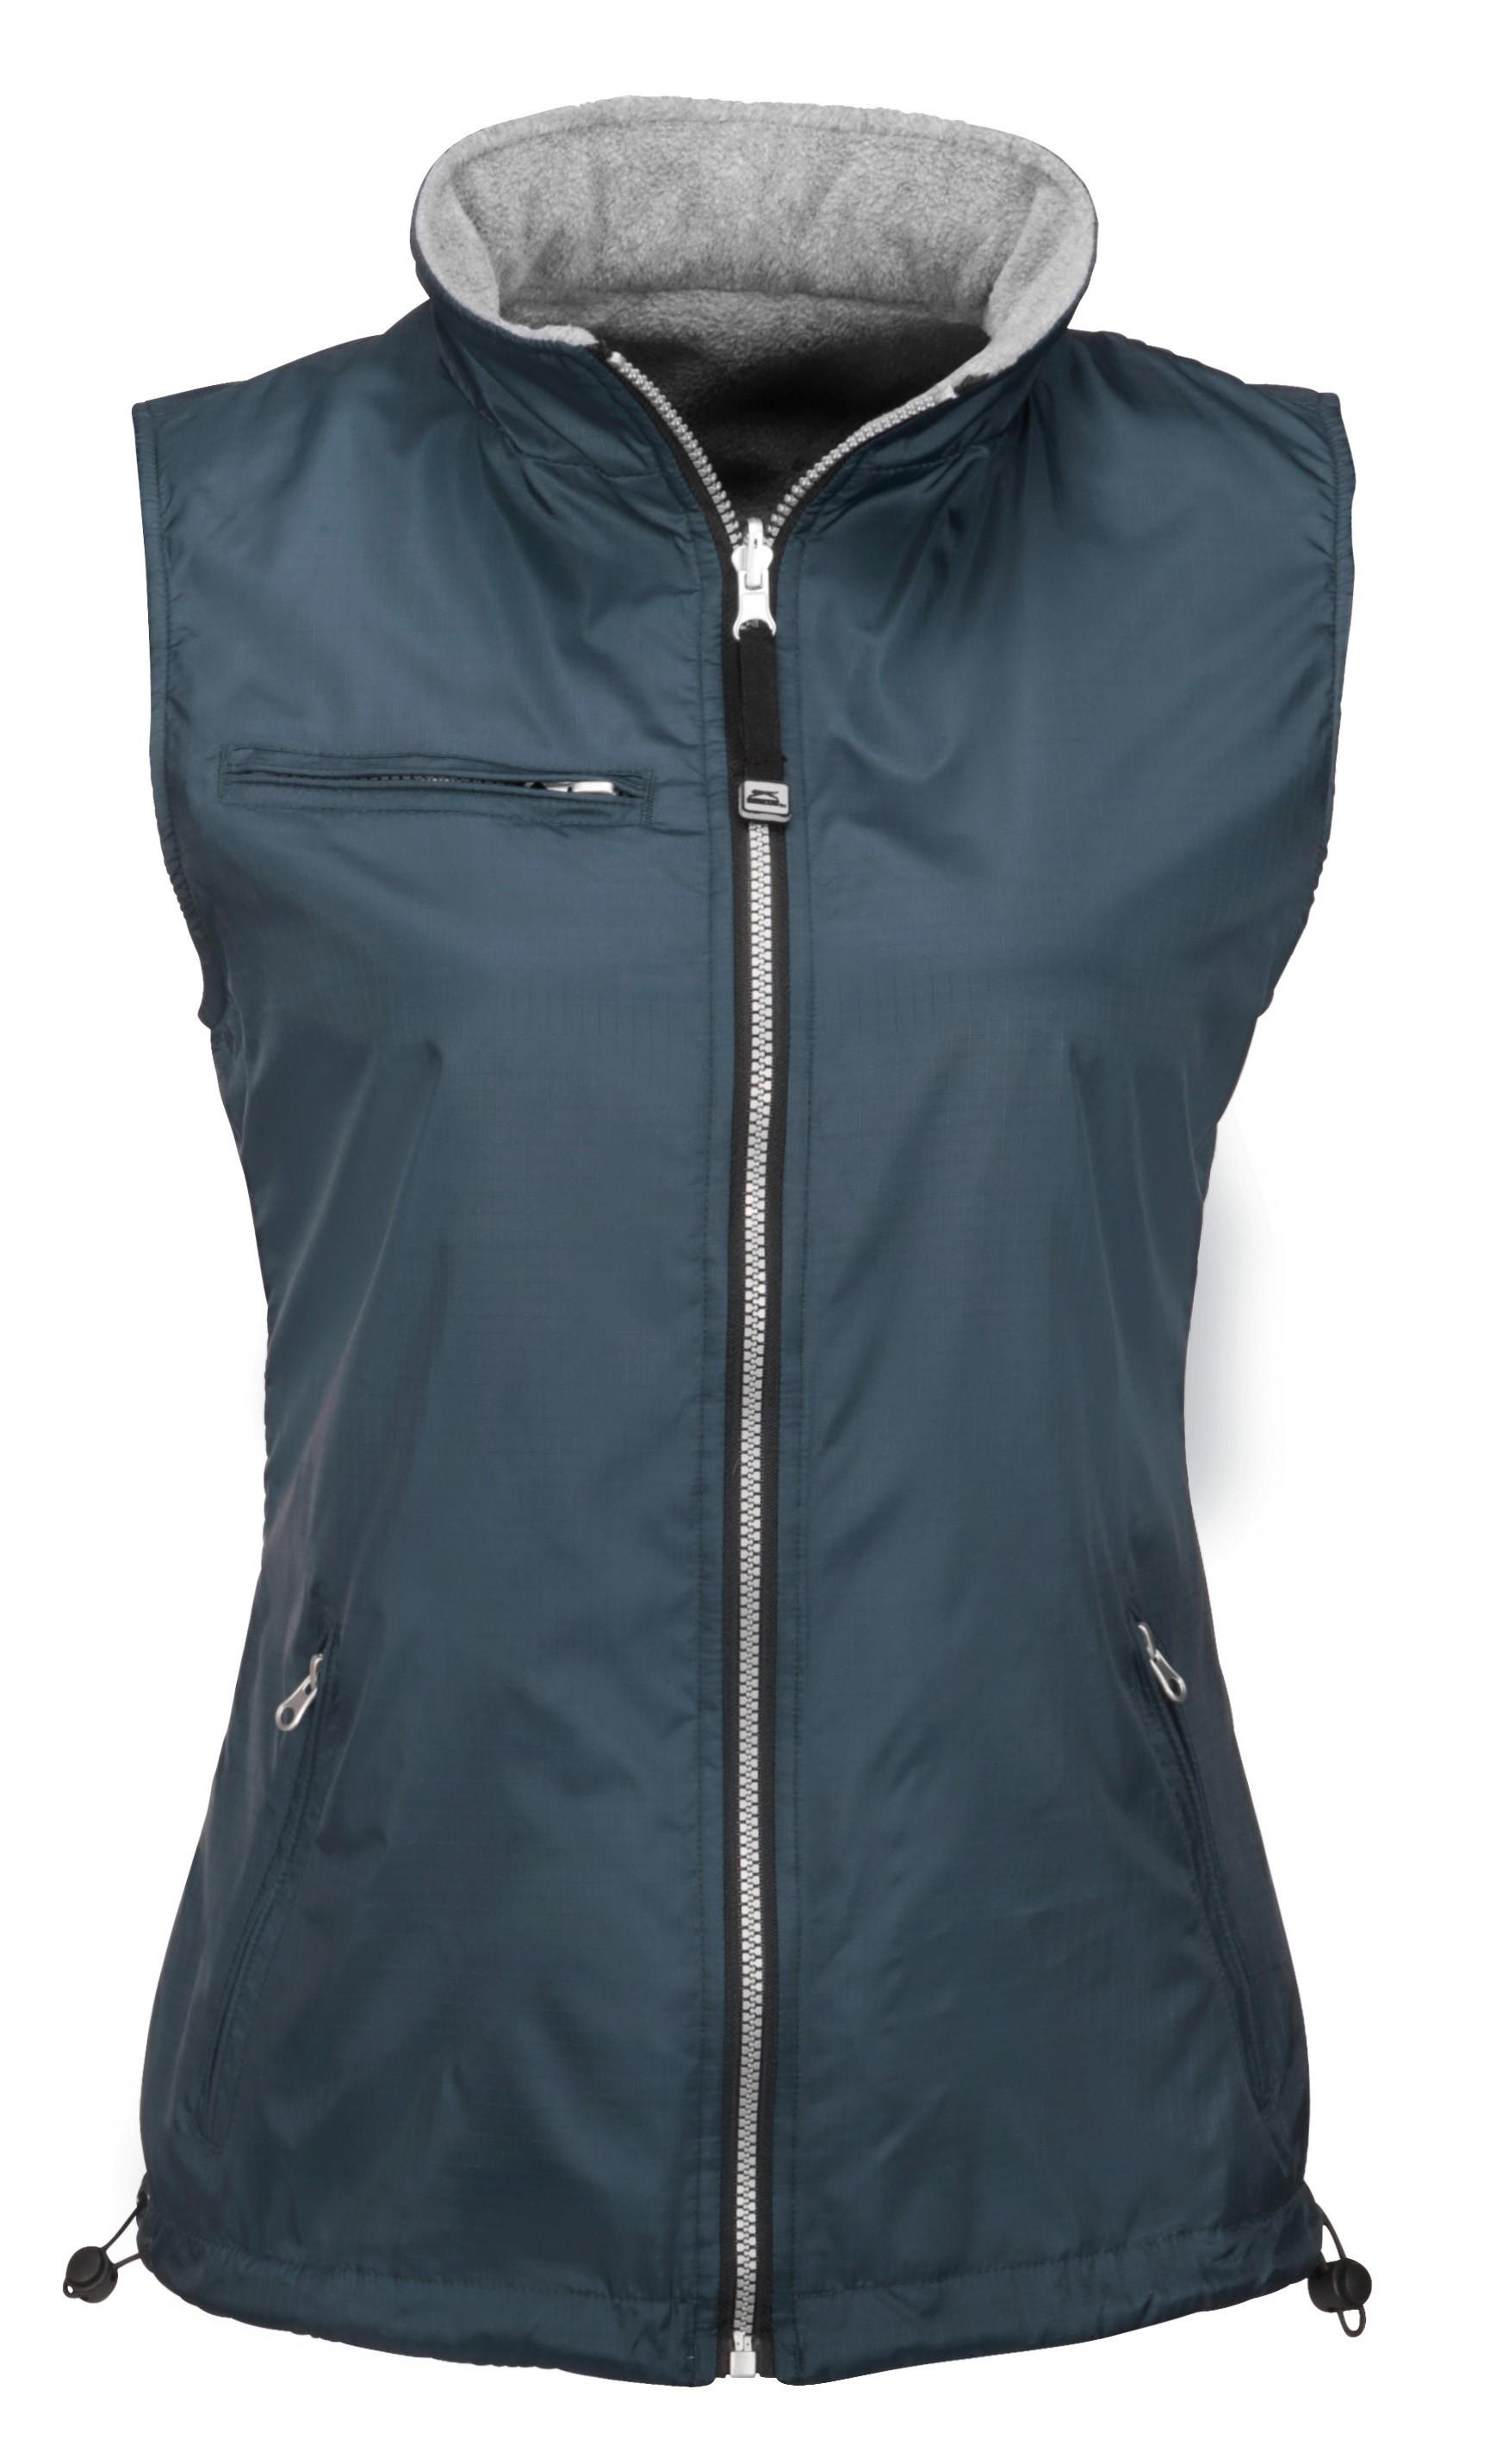 Ladies Reversible Fusion Bodywarmer - Navy Only